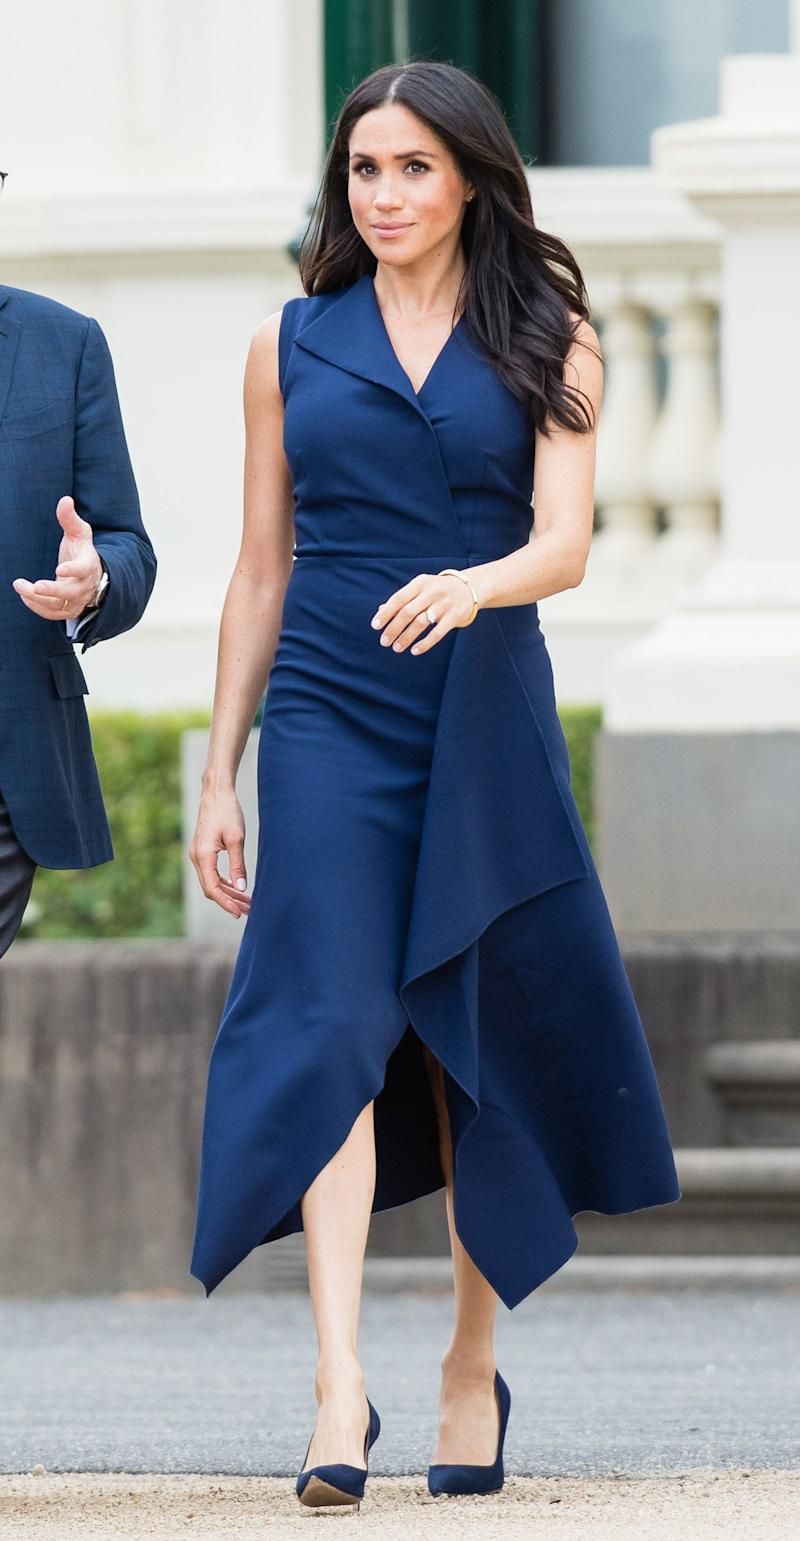 "The duchess wears a <a href=""https://global.dionlee.com/shop/dion-lee/new-/folded-sail-dress-a9564-p19/281031"" target=""_blank"" rel=""noopener noreferrer"">Dion Lee dress</a> on Oct. 18, day three of the royal tour. The dress, which costs $990, is currently available for preorder."